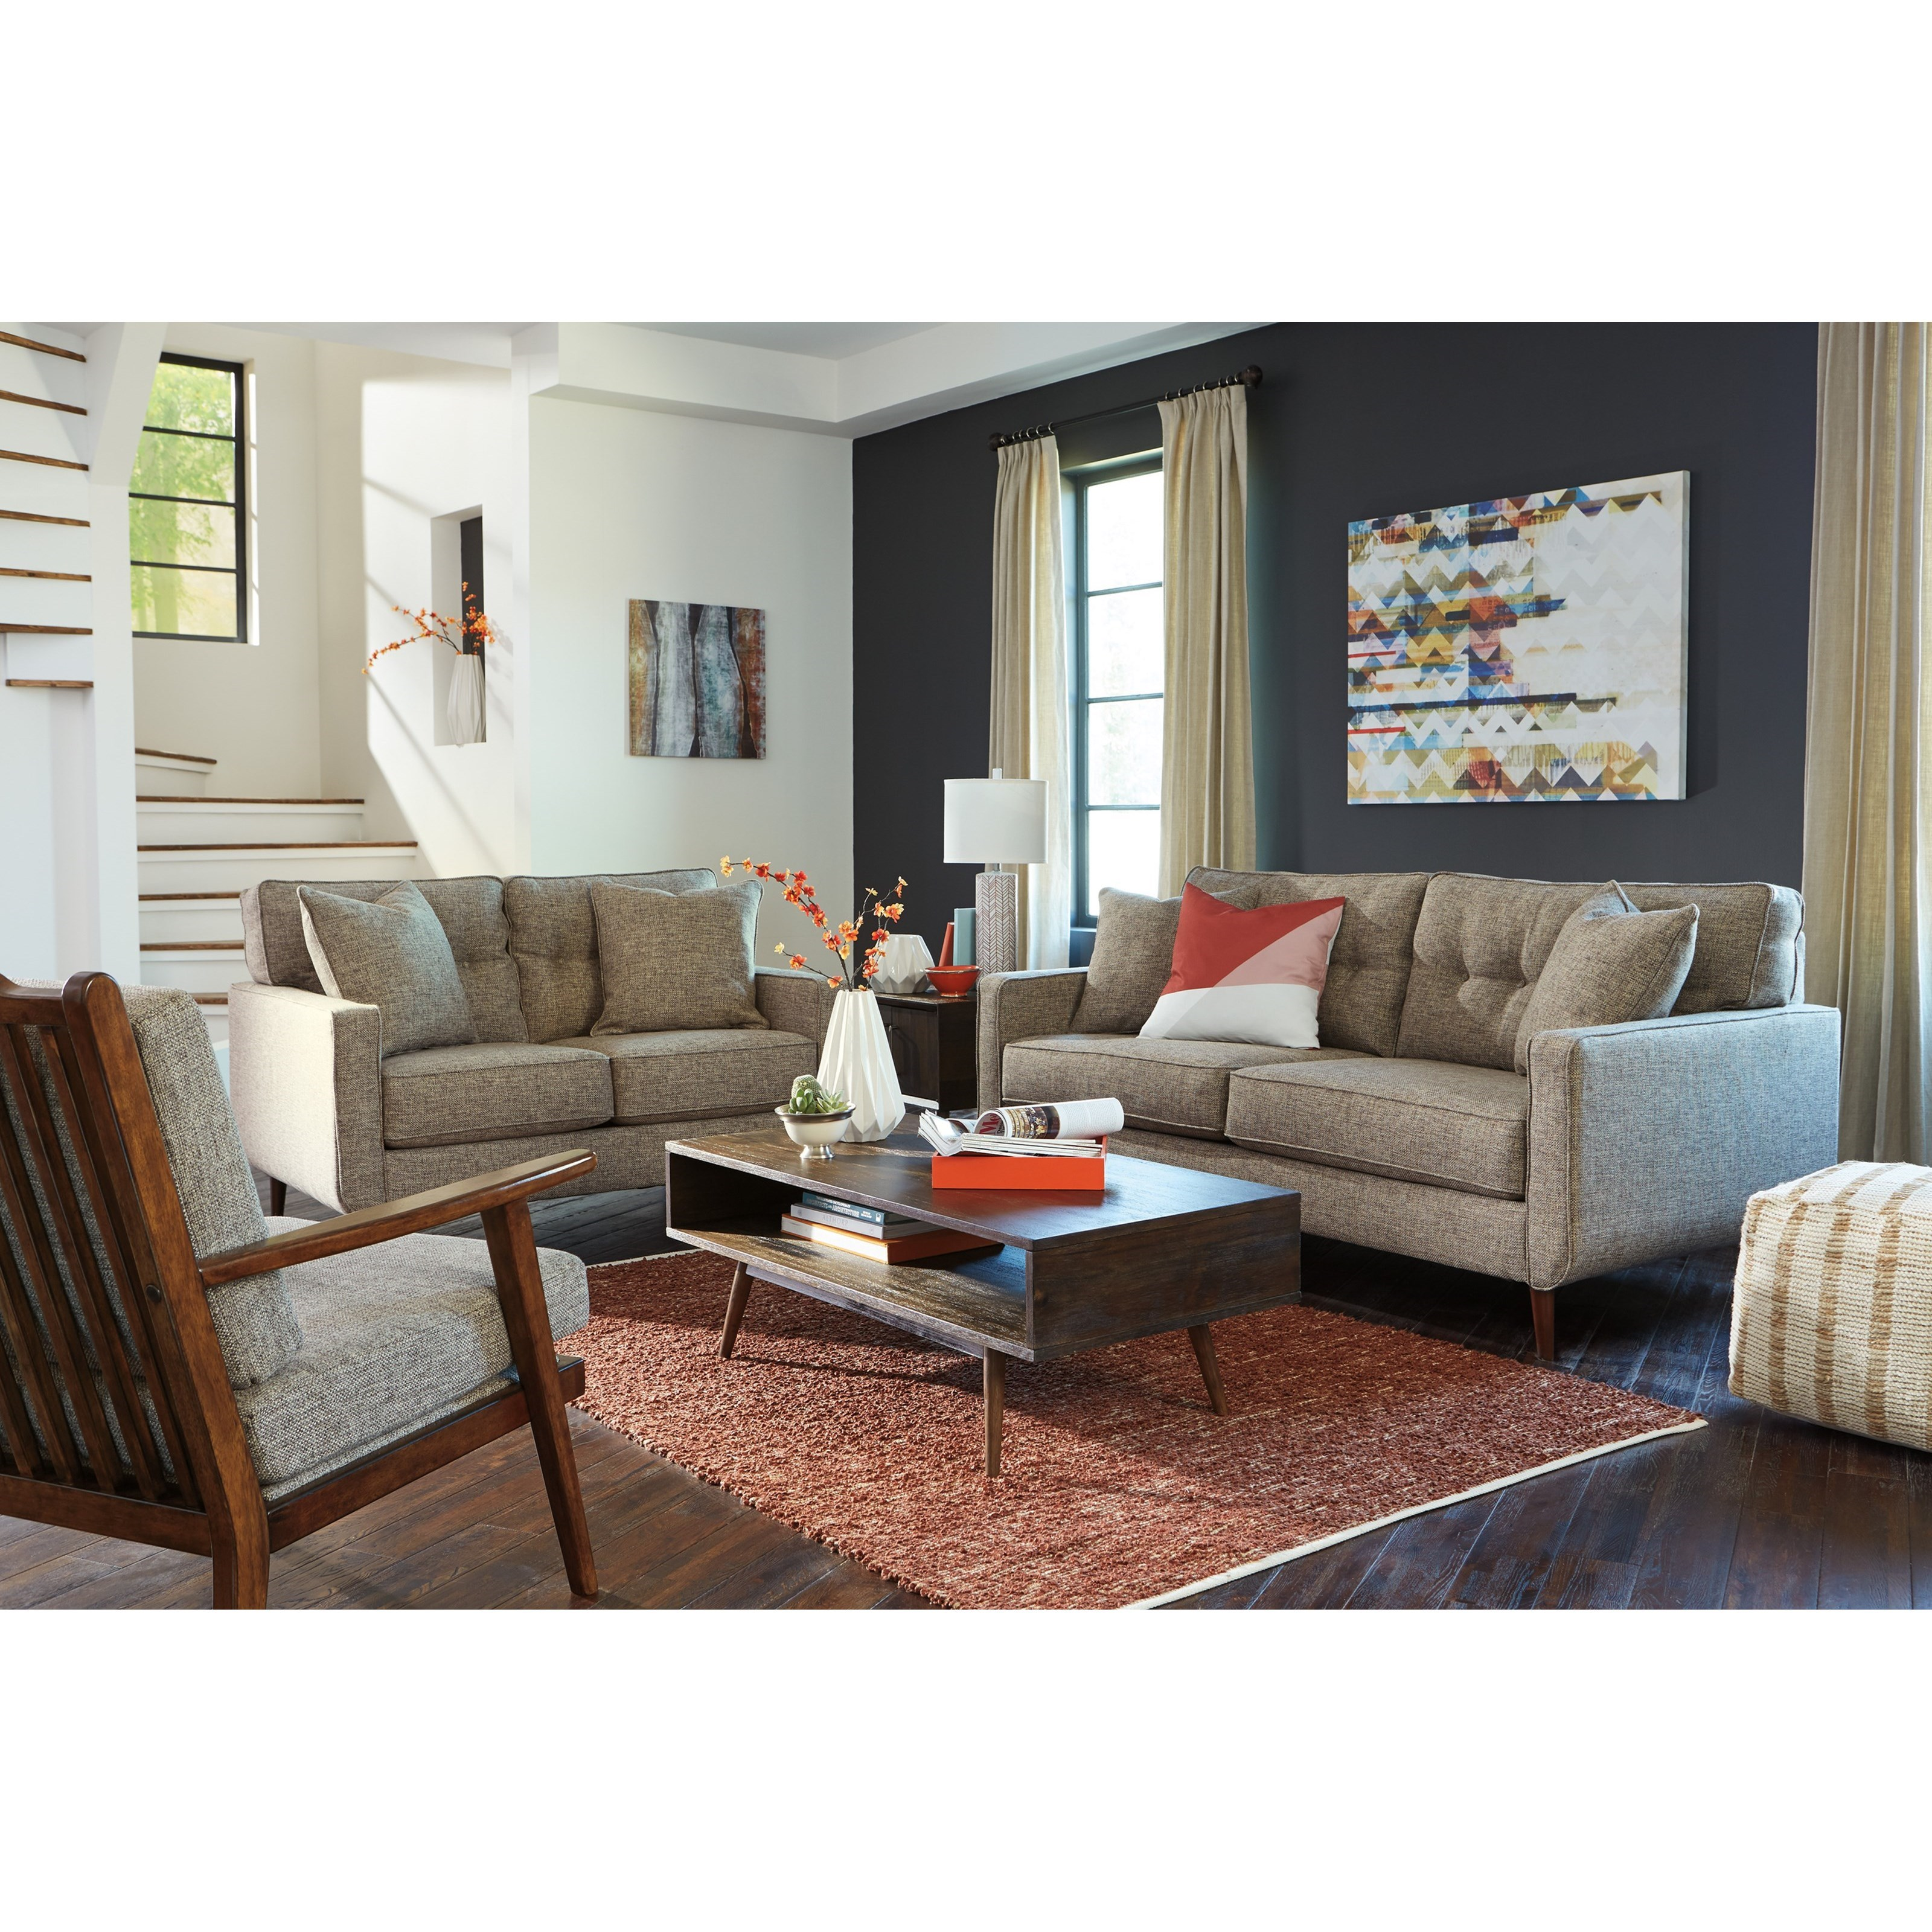 Dahra Stationary Living Room Group by Benchcraft at Zak's Warehouse Clearance Center